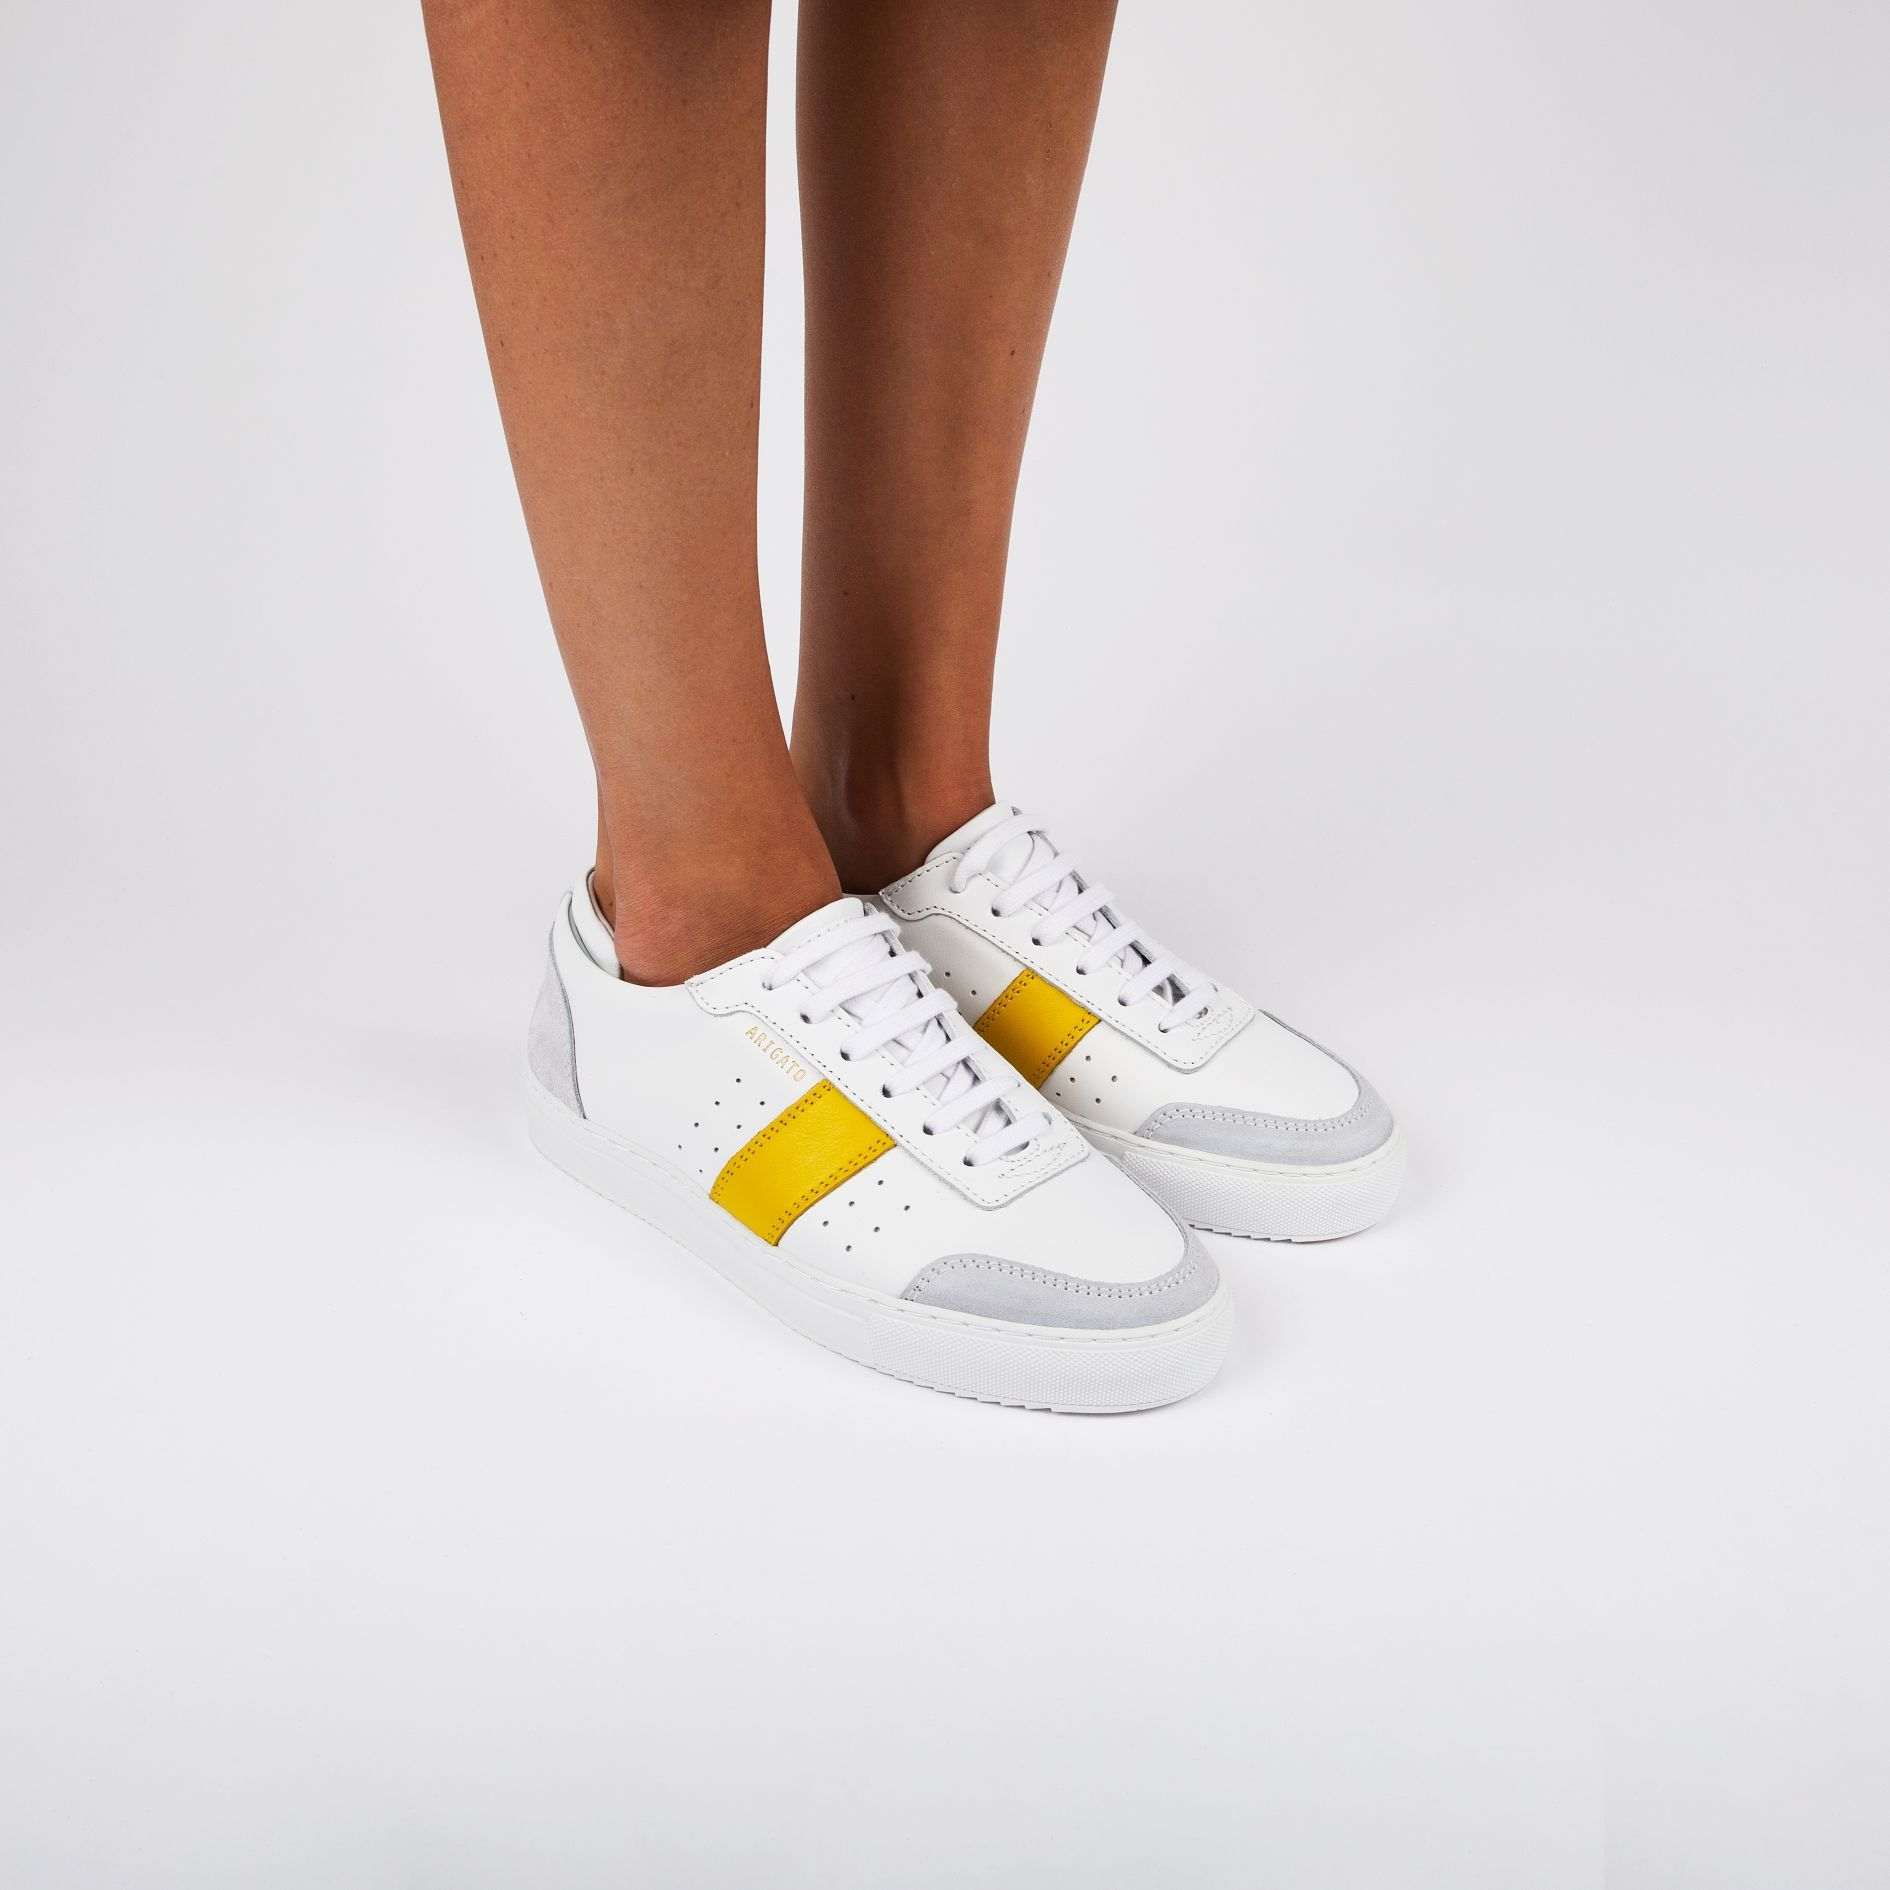 Dunk Sneaker White Leather | Sneakers